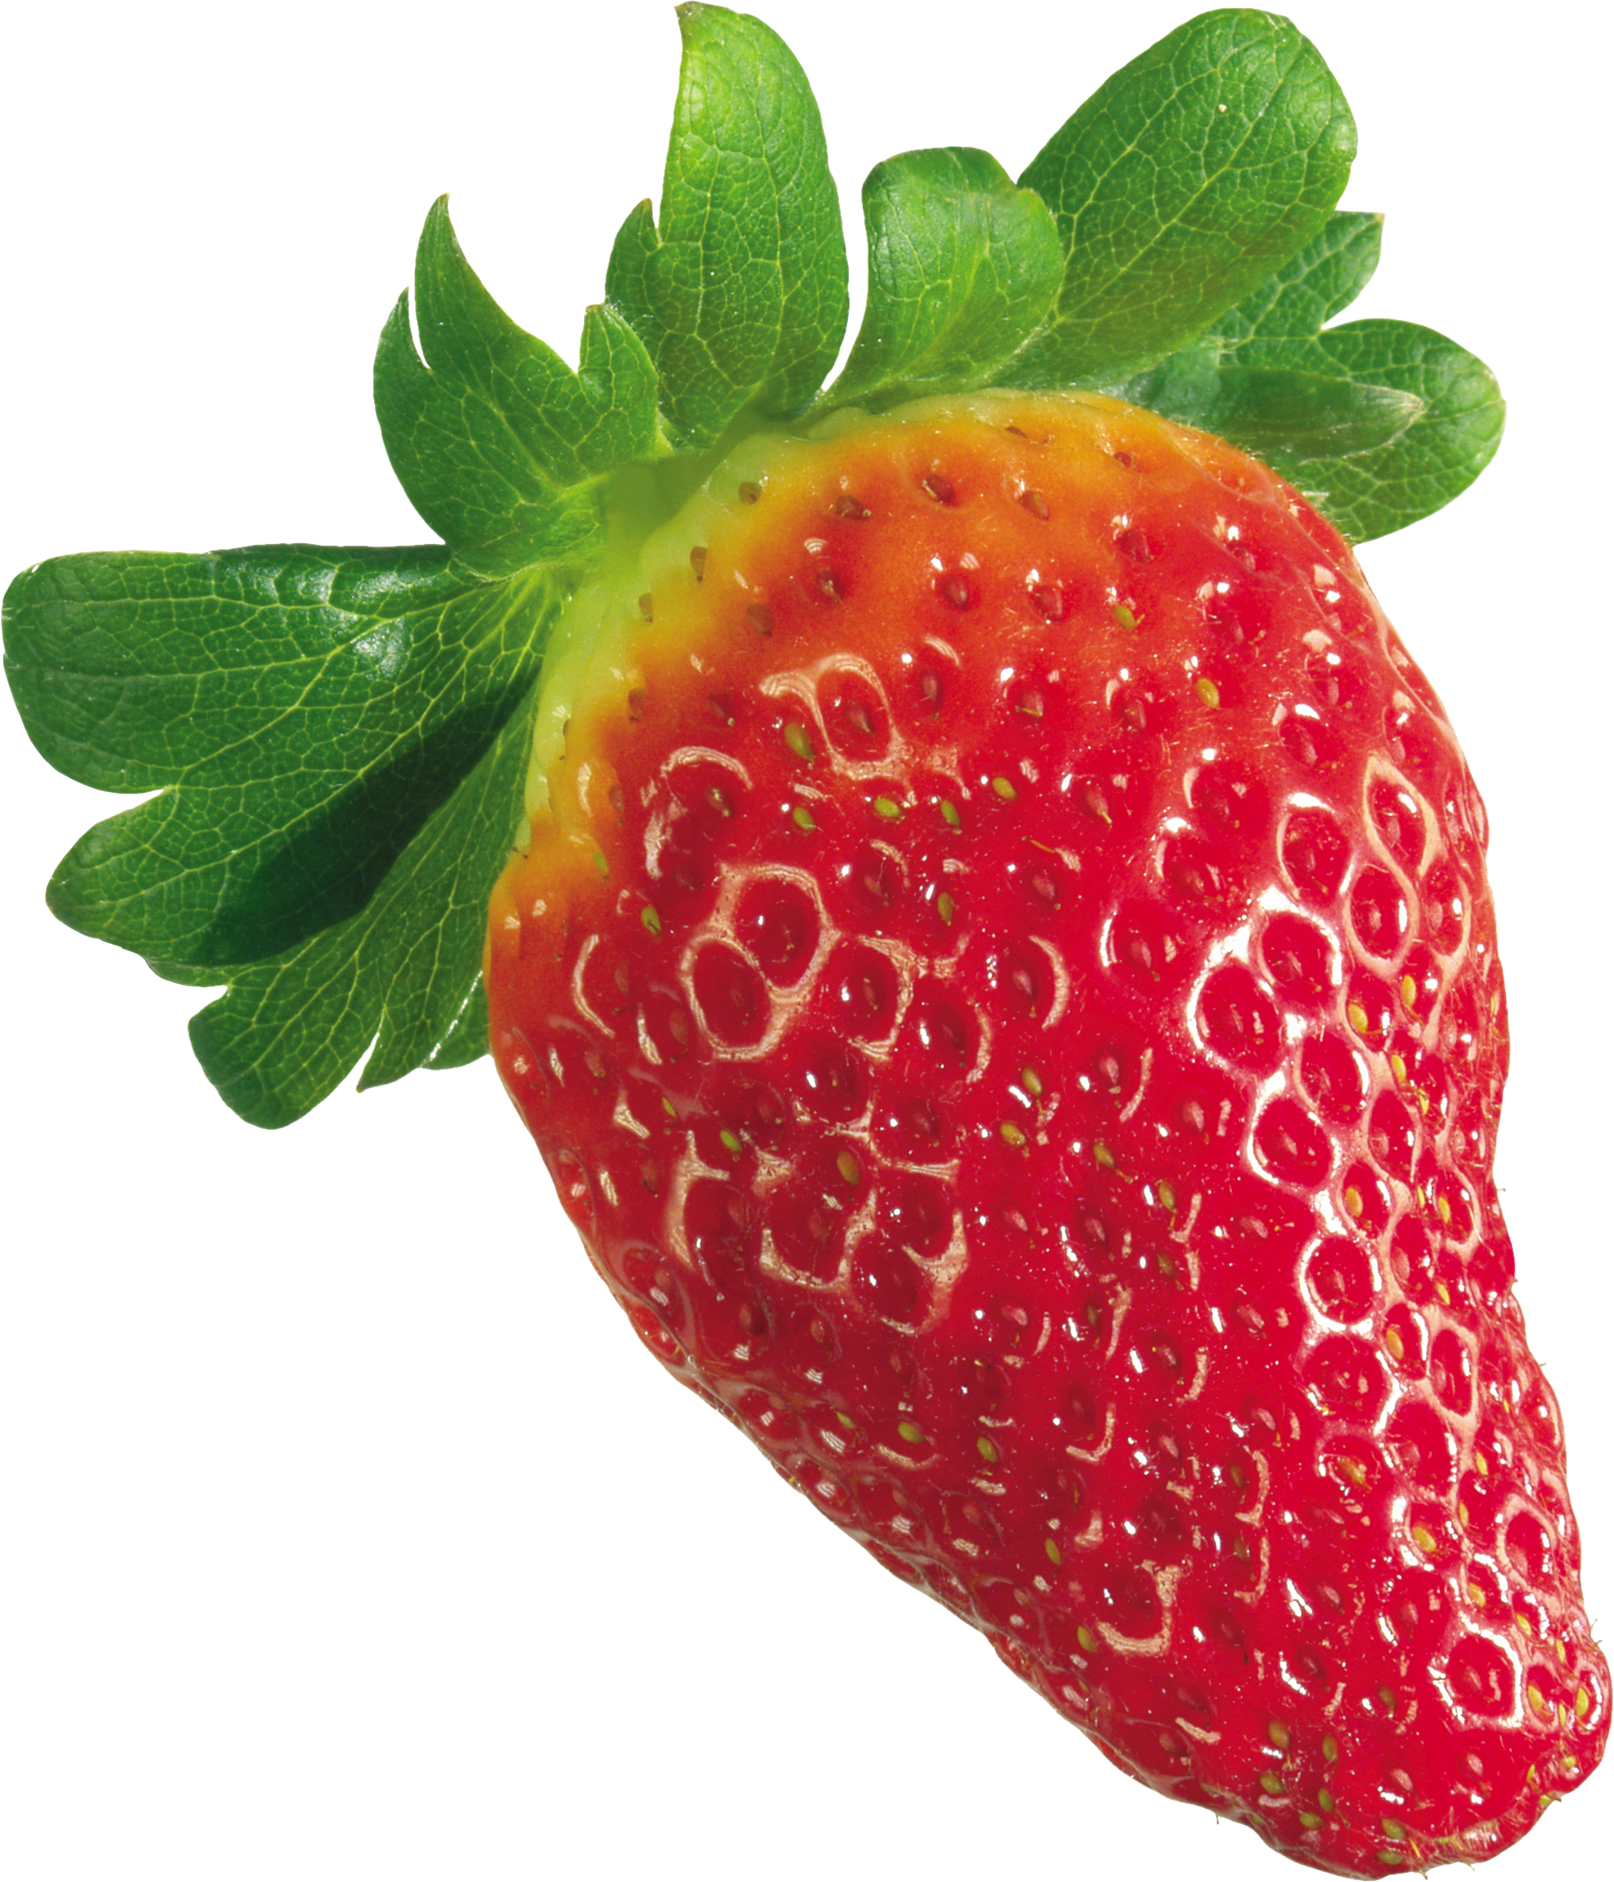 Strawberry png free icons. Strawberries clipart borders